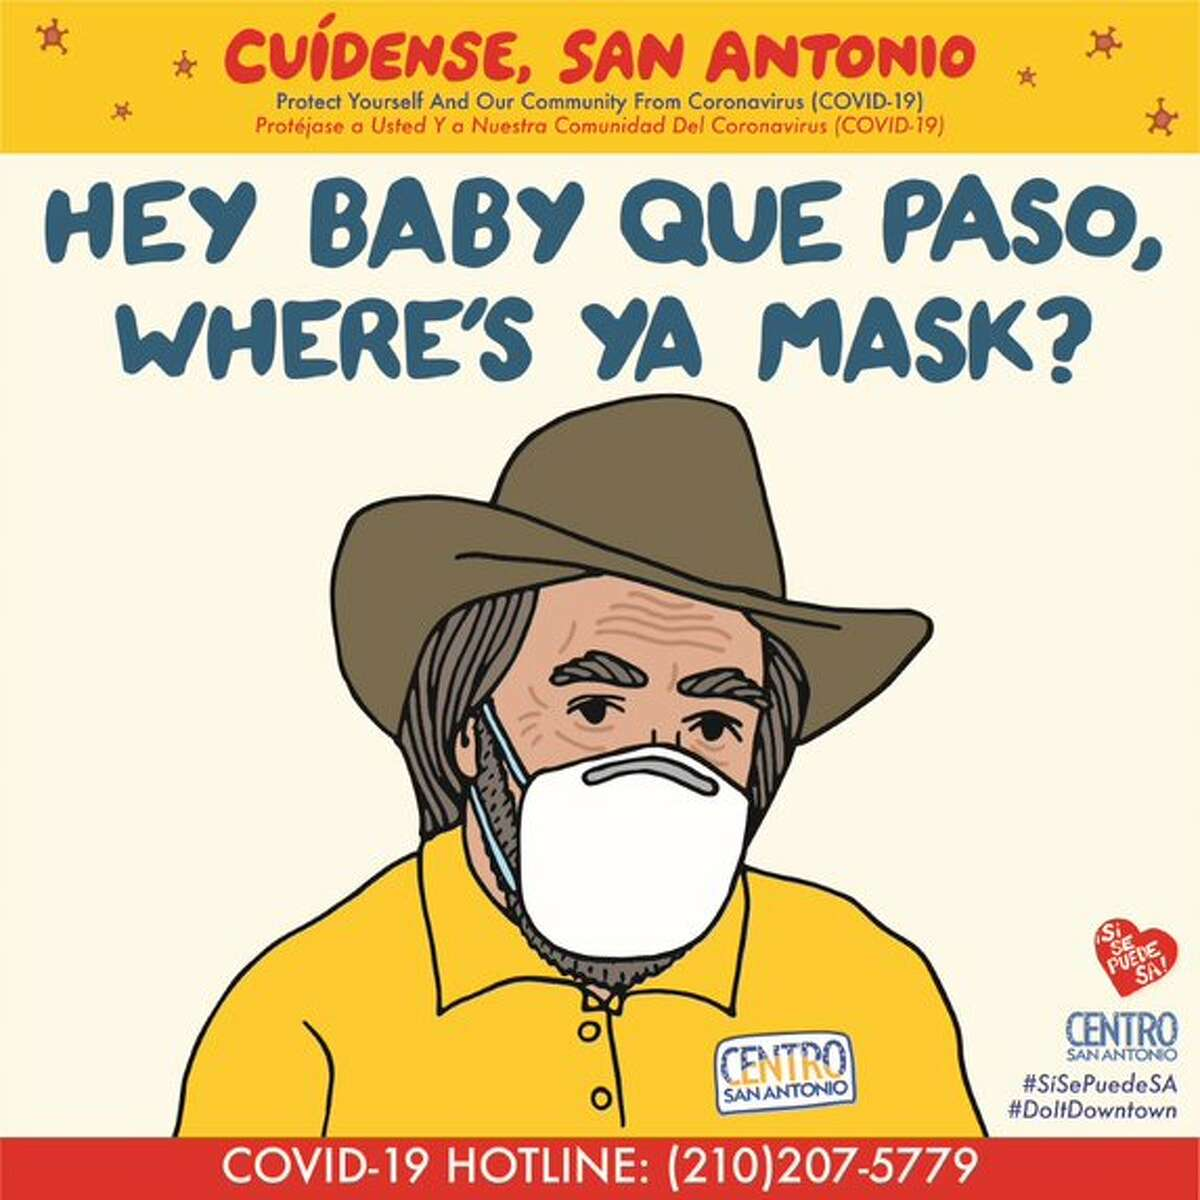 Looking for a polite way to tell someone to give you 6 feet of social distancing or to mask up? Maybe refer to Centro San Antonio's new, hyper-San Antonio messaging.